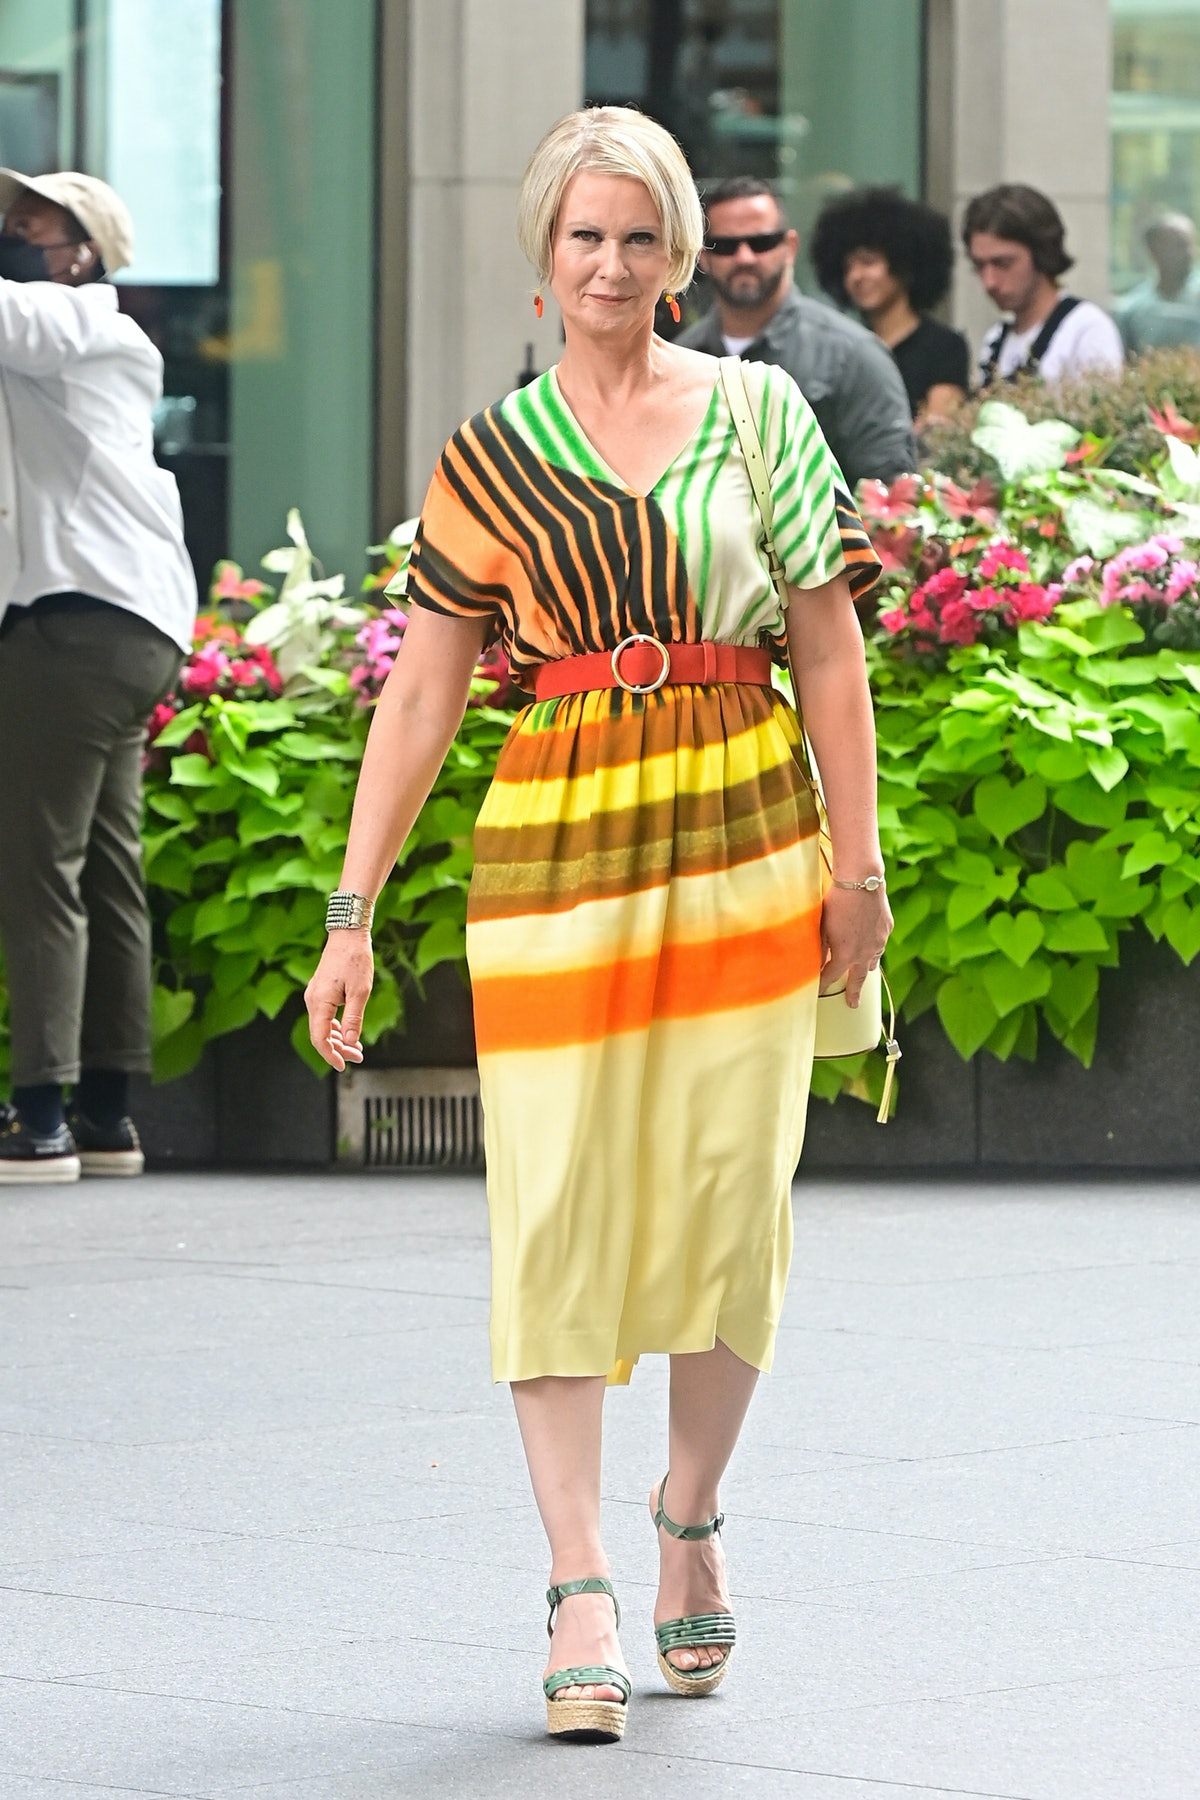 """Cynthia Nixon seen on the set of """"And Just Like That..."""" in Midtown Manhattan in New York City on Ju..."""